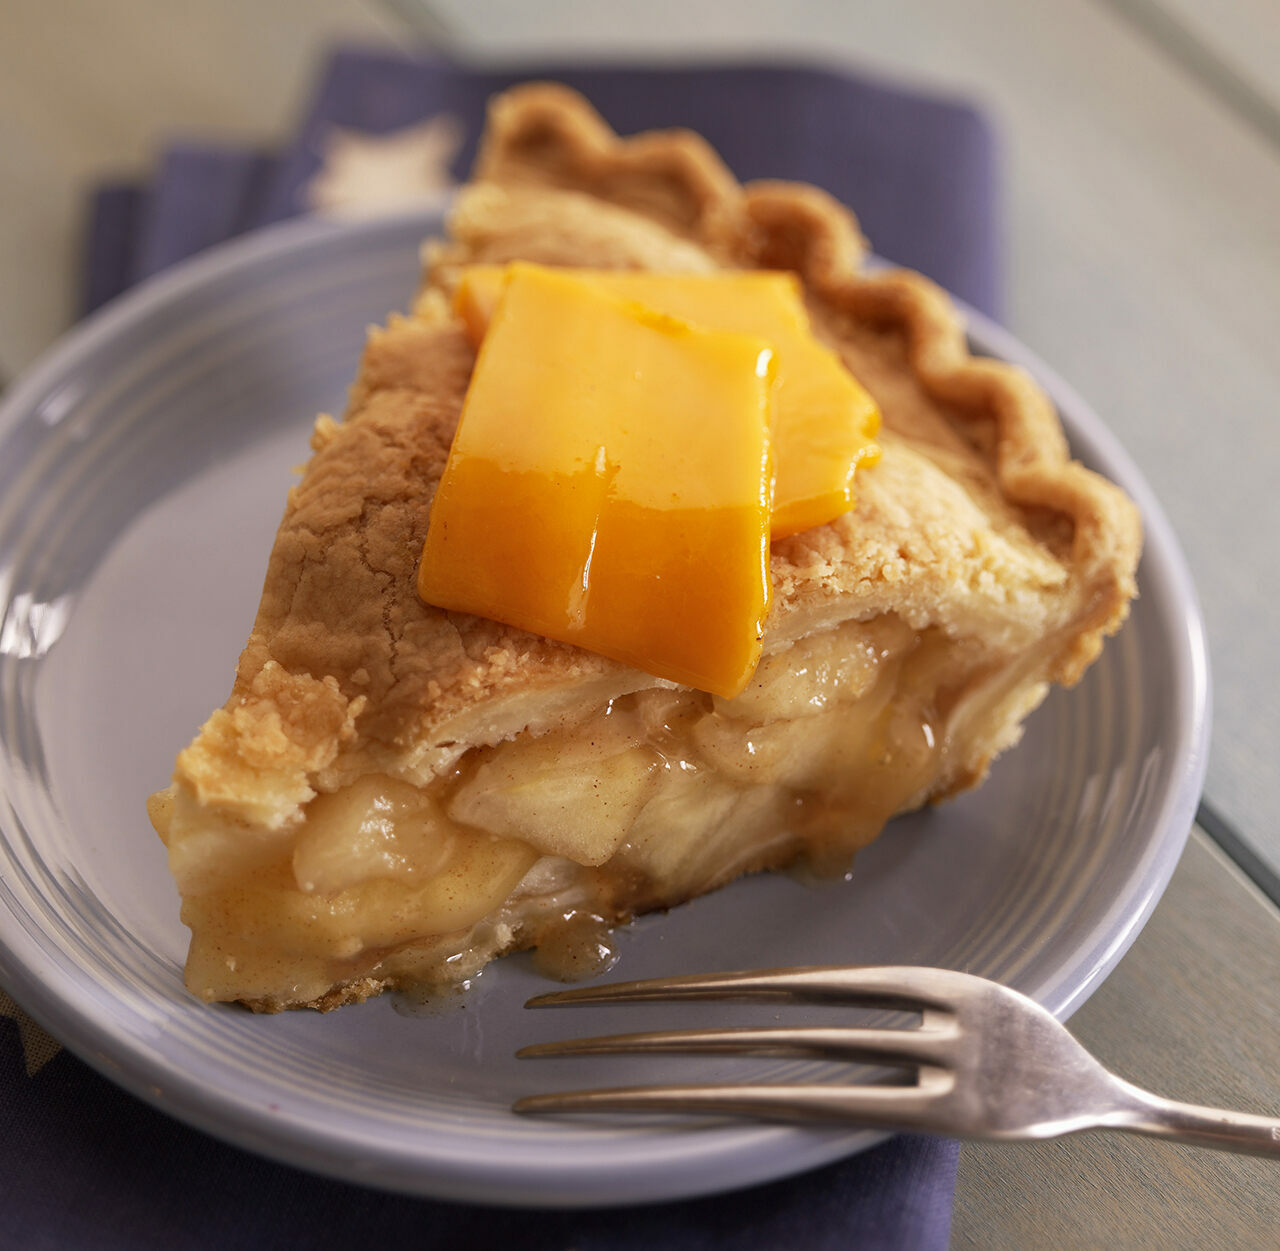 Cheddar cheese on apple pie (one of the less complex variants).